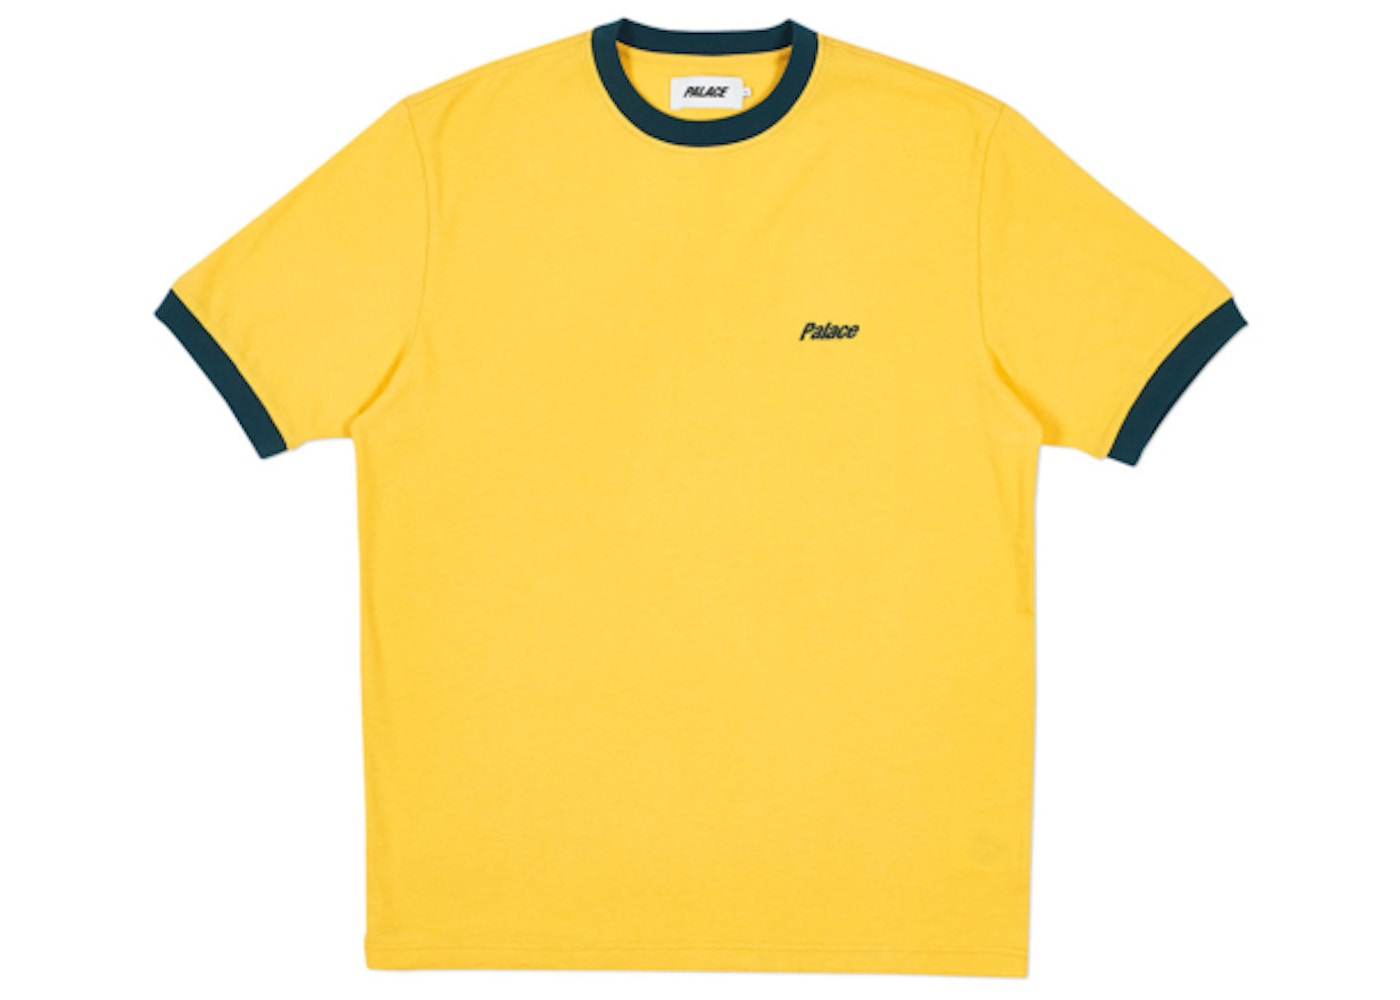 337e113364b Palace Heavy Ringer T-Shirt Yellow Green - Spring 2018